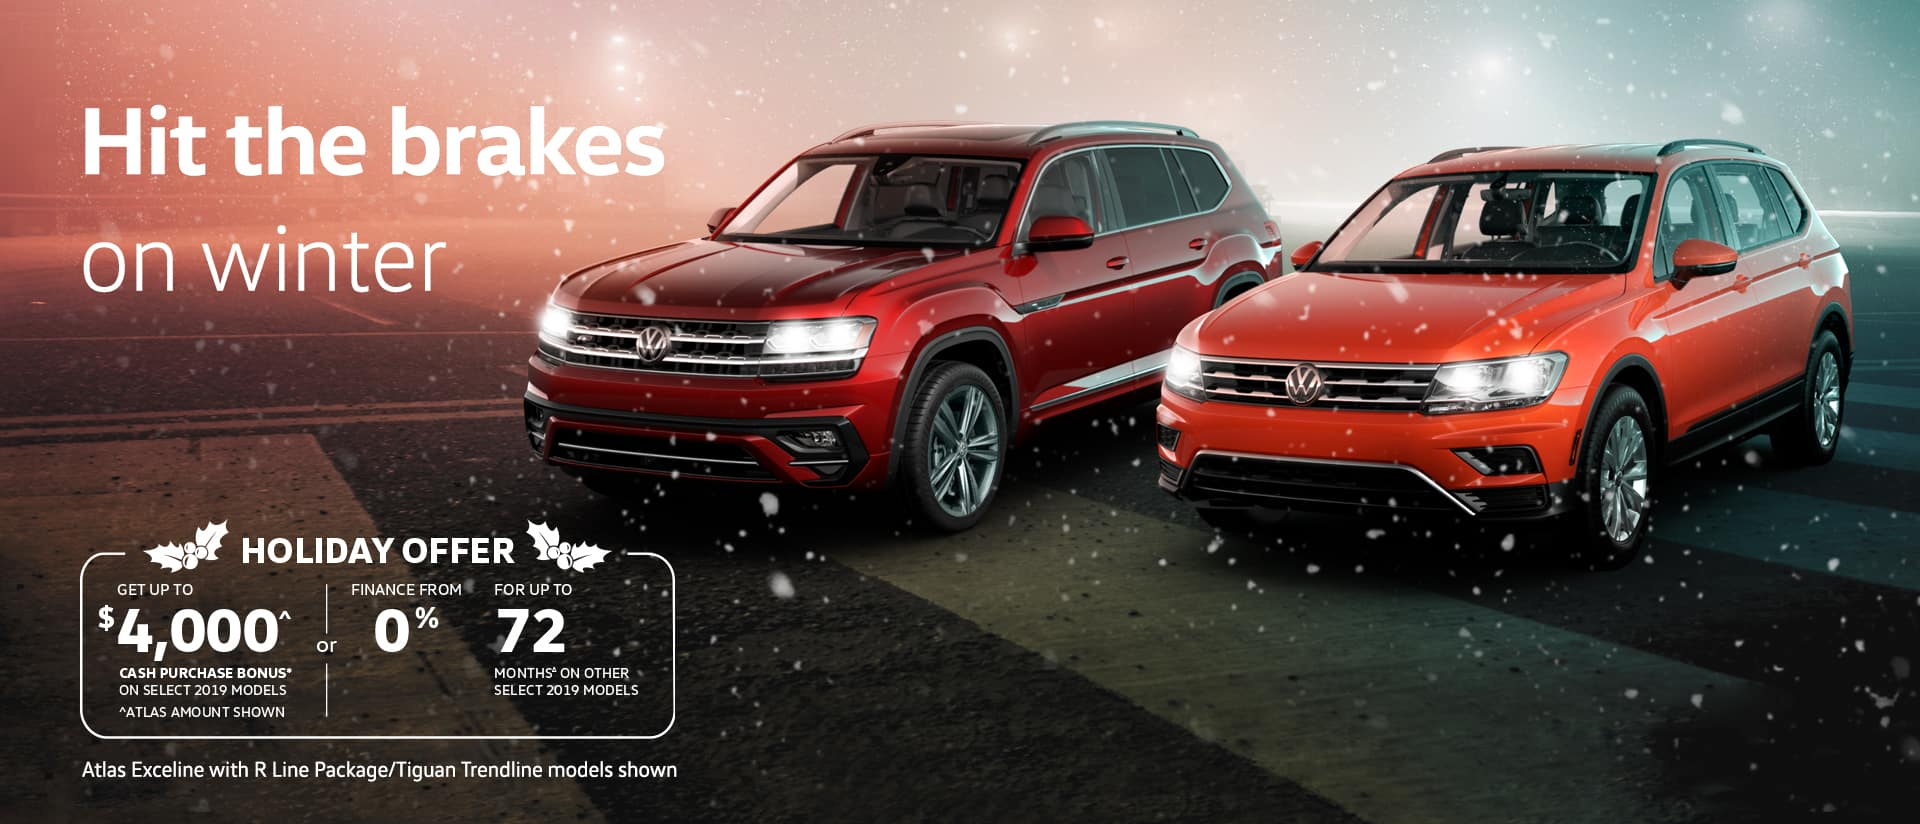 two volkswagen SUVs with snow falling around them